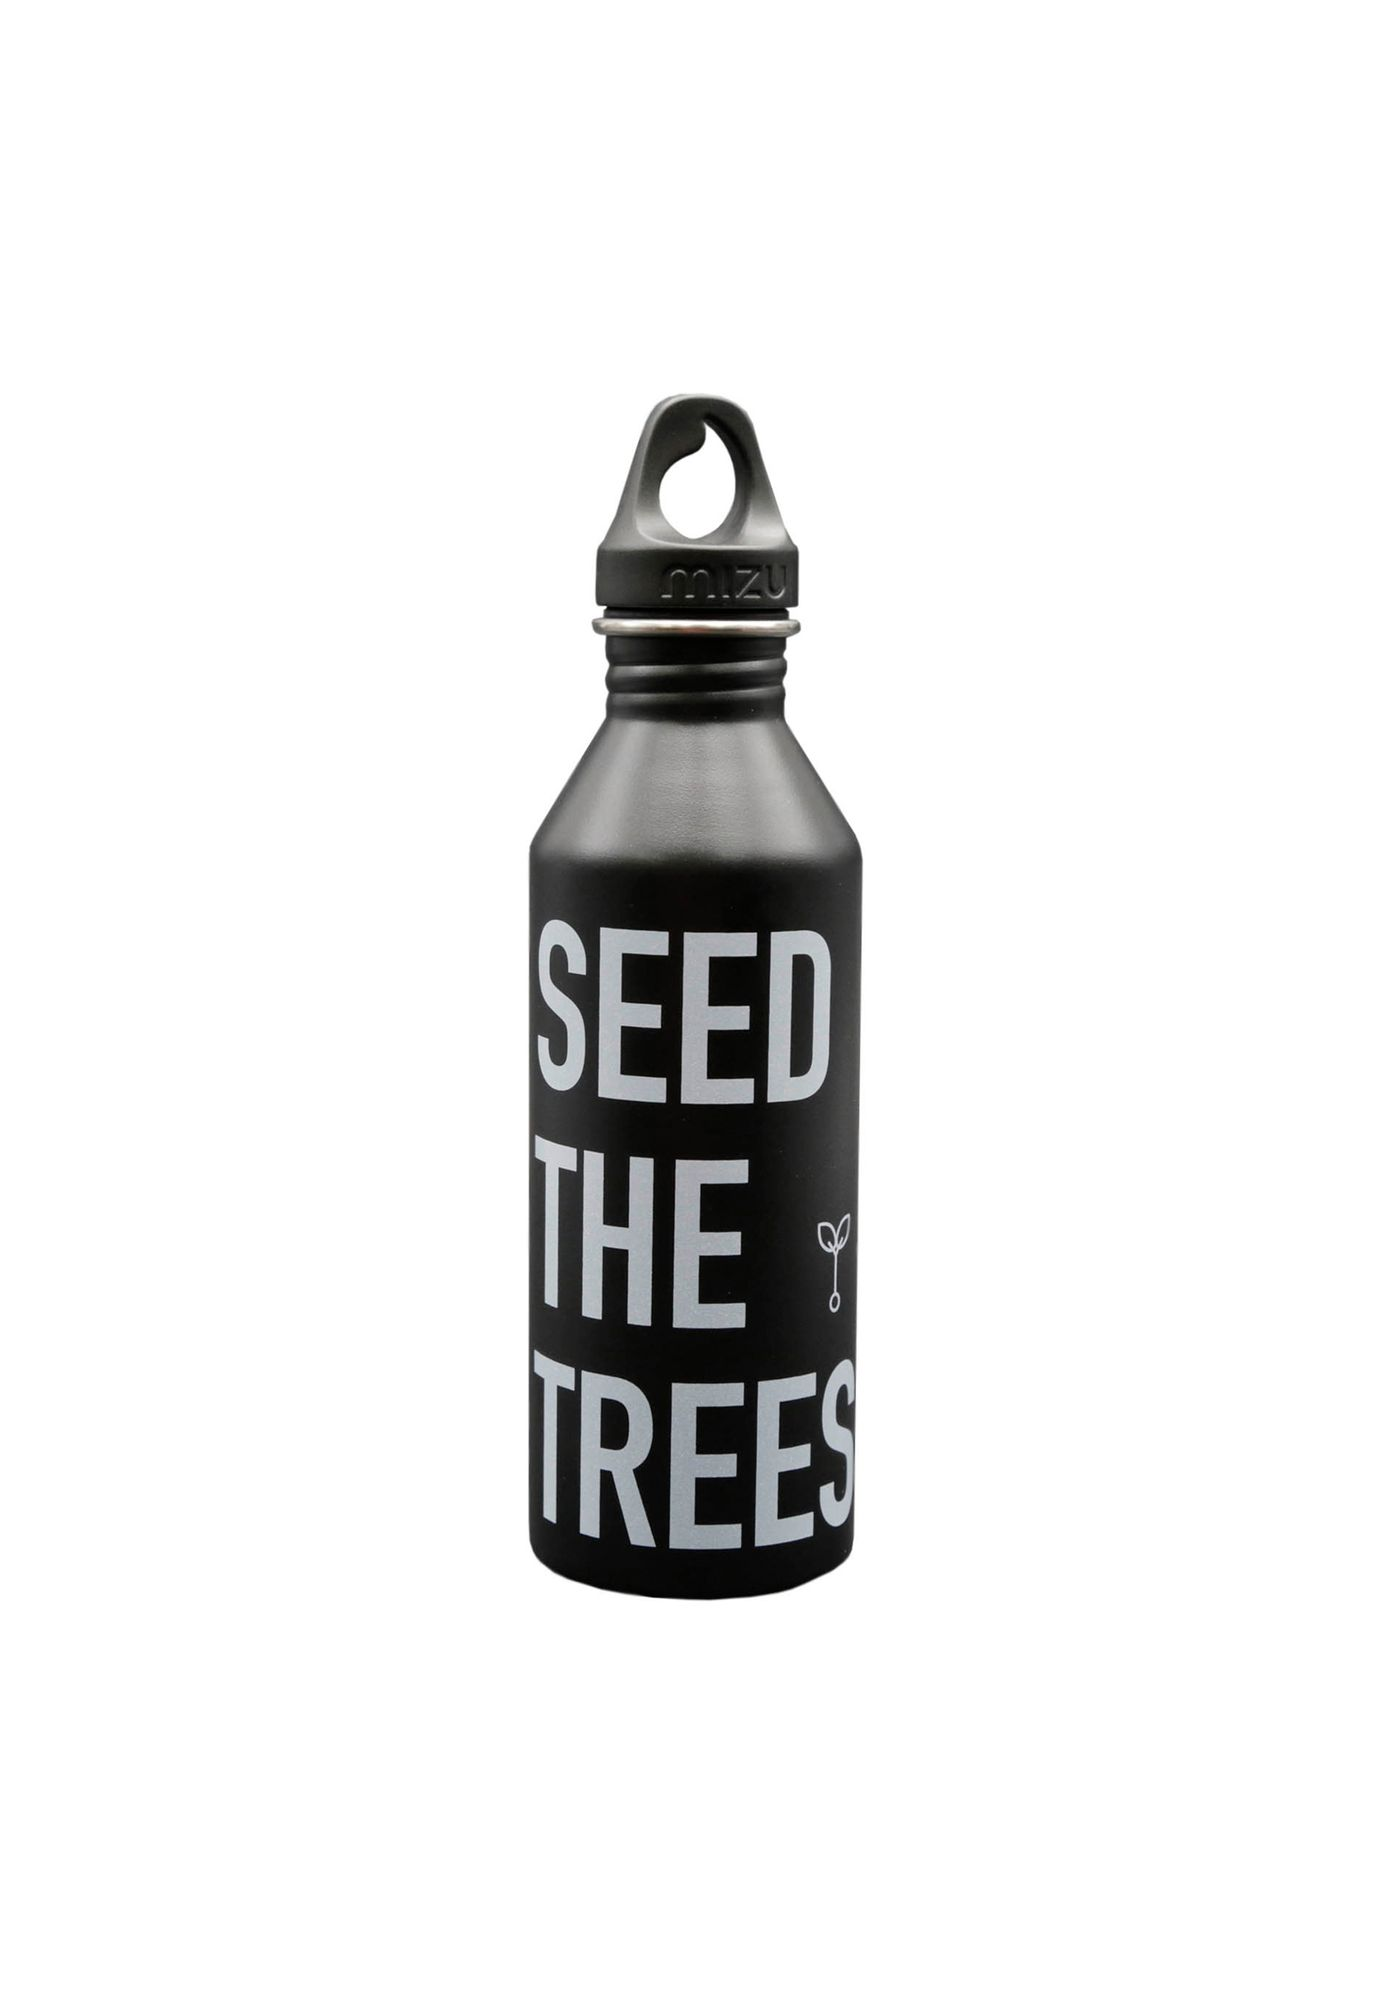 SEED THE TREES Stainless Steel Bottle Black